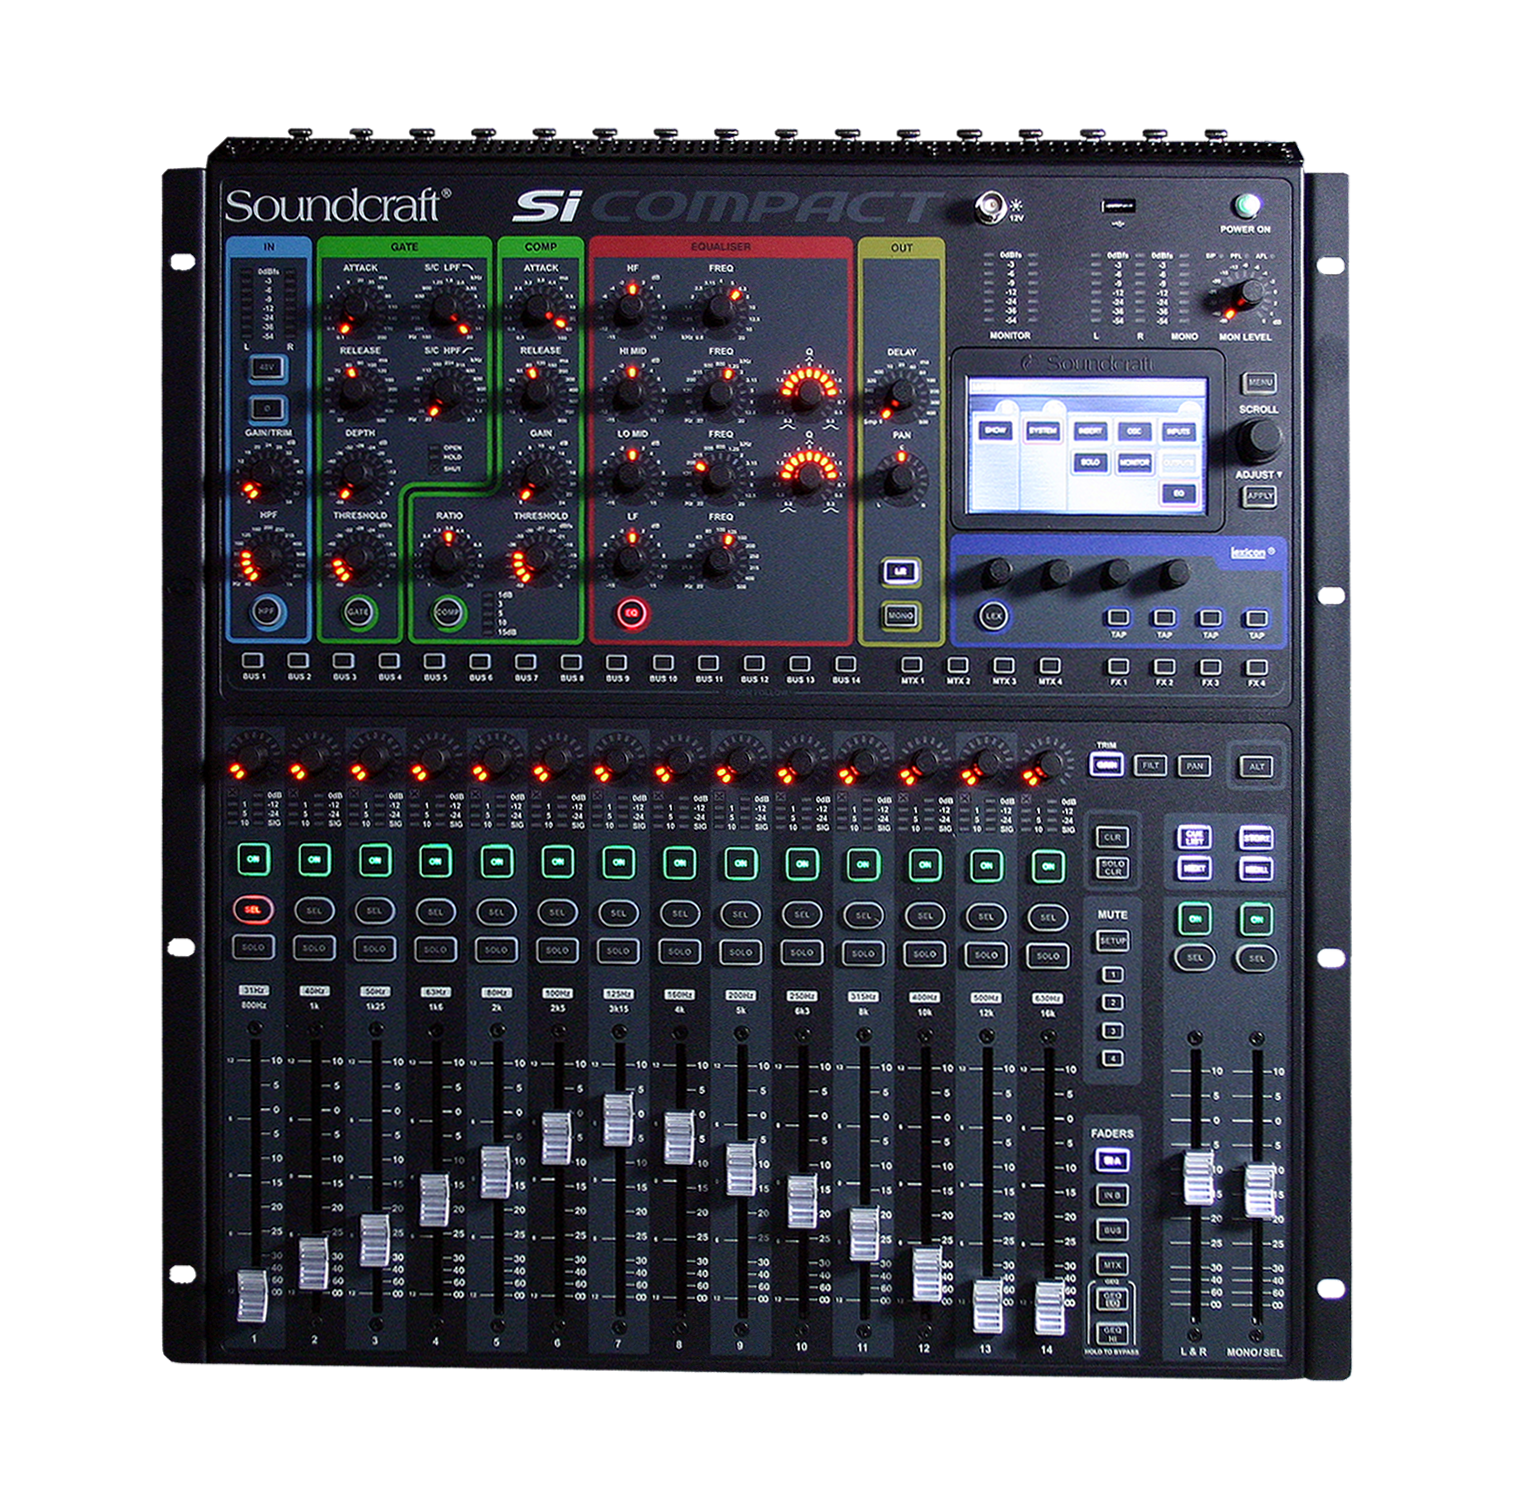 Si Compact 16 Soundcraft Professional Audio Mixers Integrated Electronics Analog And Digital Circuits Systems By Top View Cutout Tiny Square